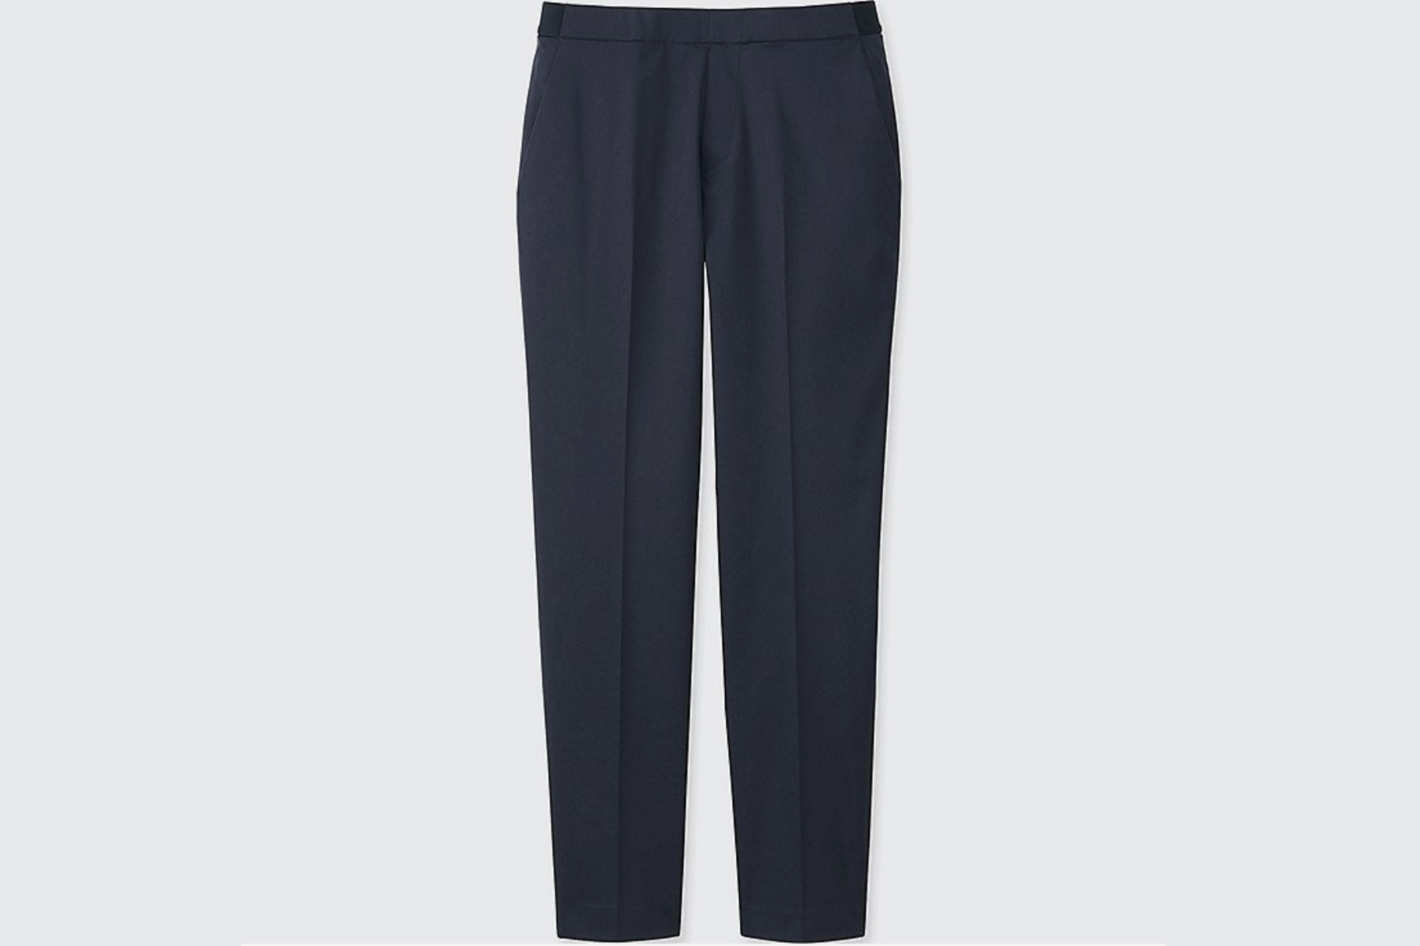 Uniqlo Satin Ankle-Length Pants